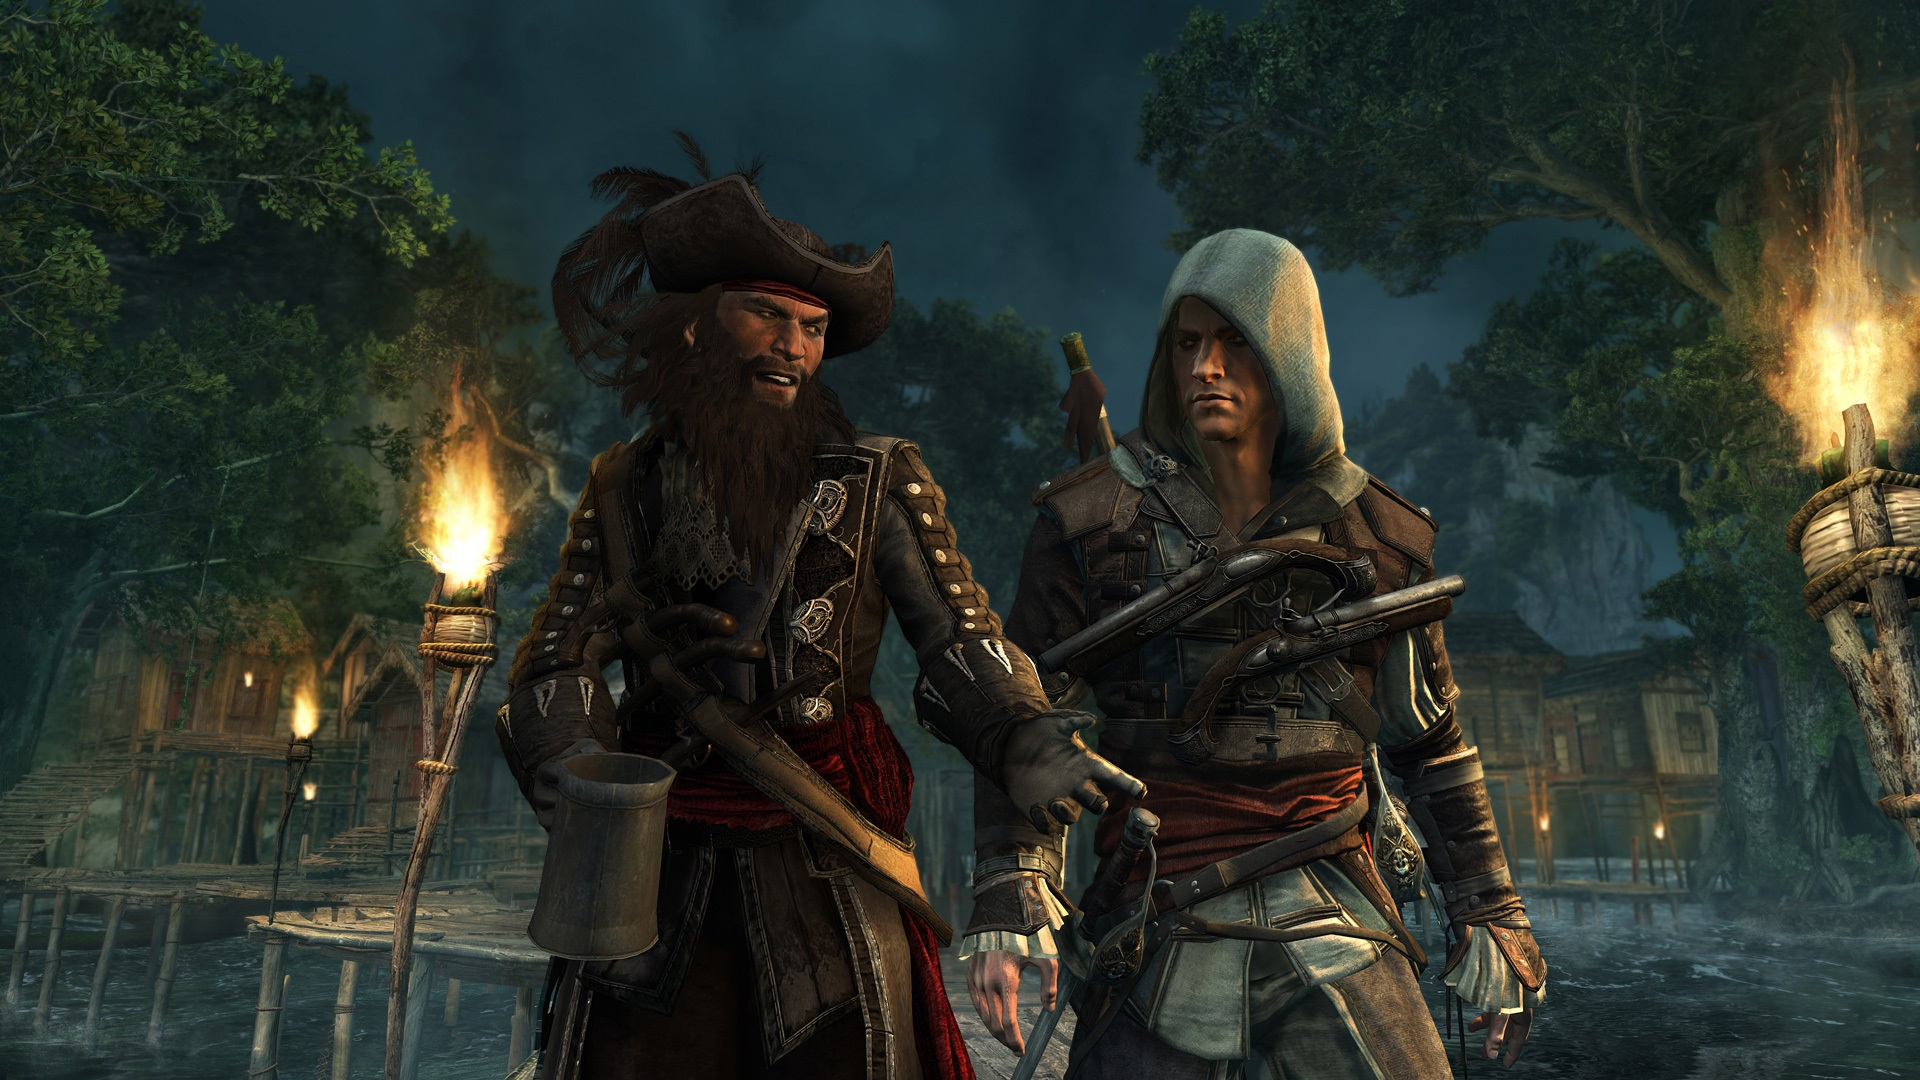 Assassins Creed 4 Multiplayer Male wallpaper 1920x1080